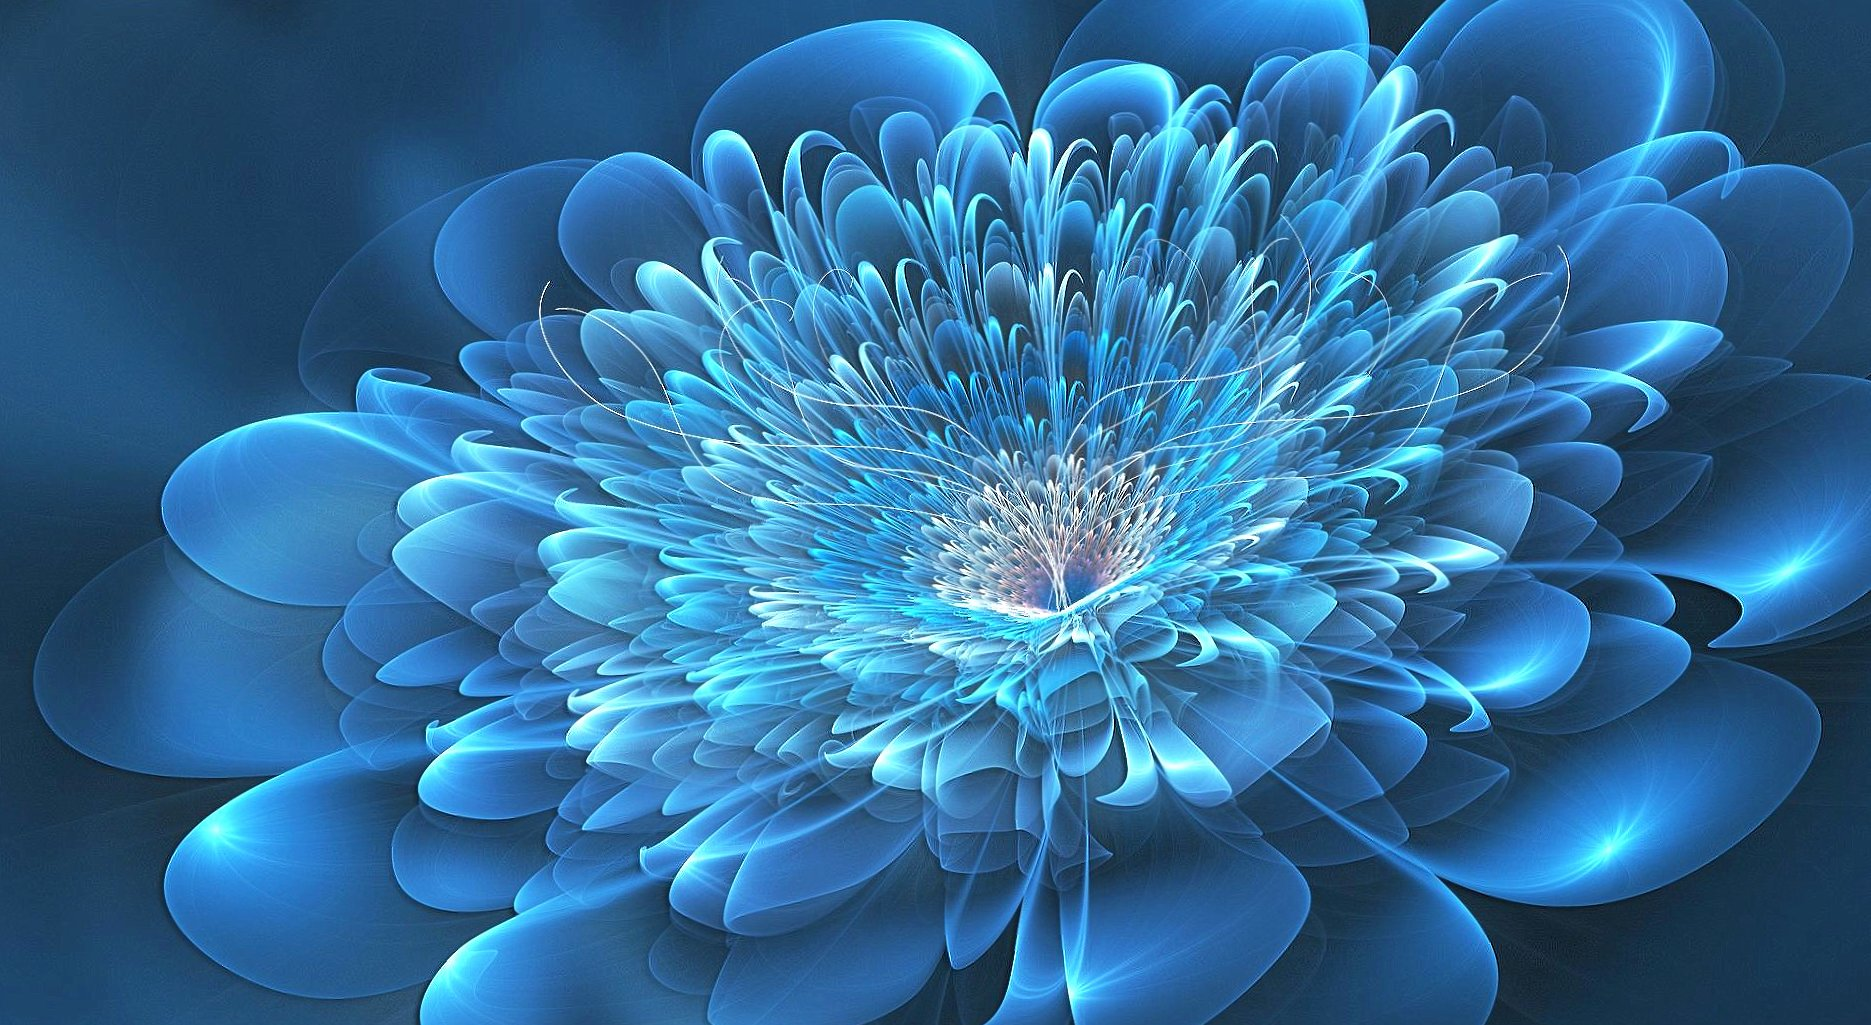 Blue flowers digital art at 640 x 1136 iPhone 5 size wallpapers HD quality